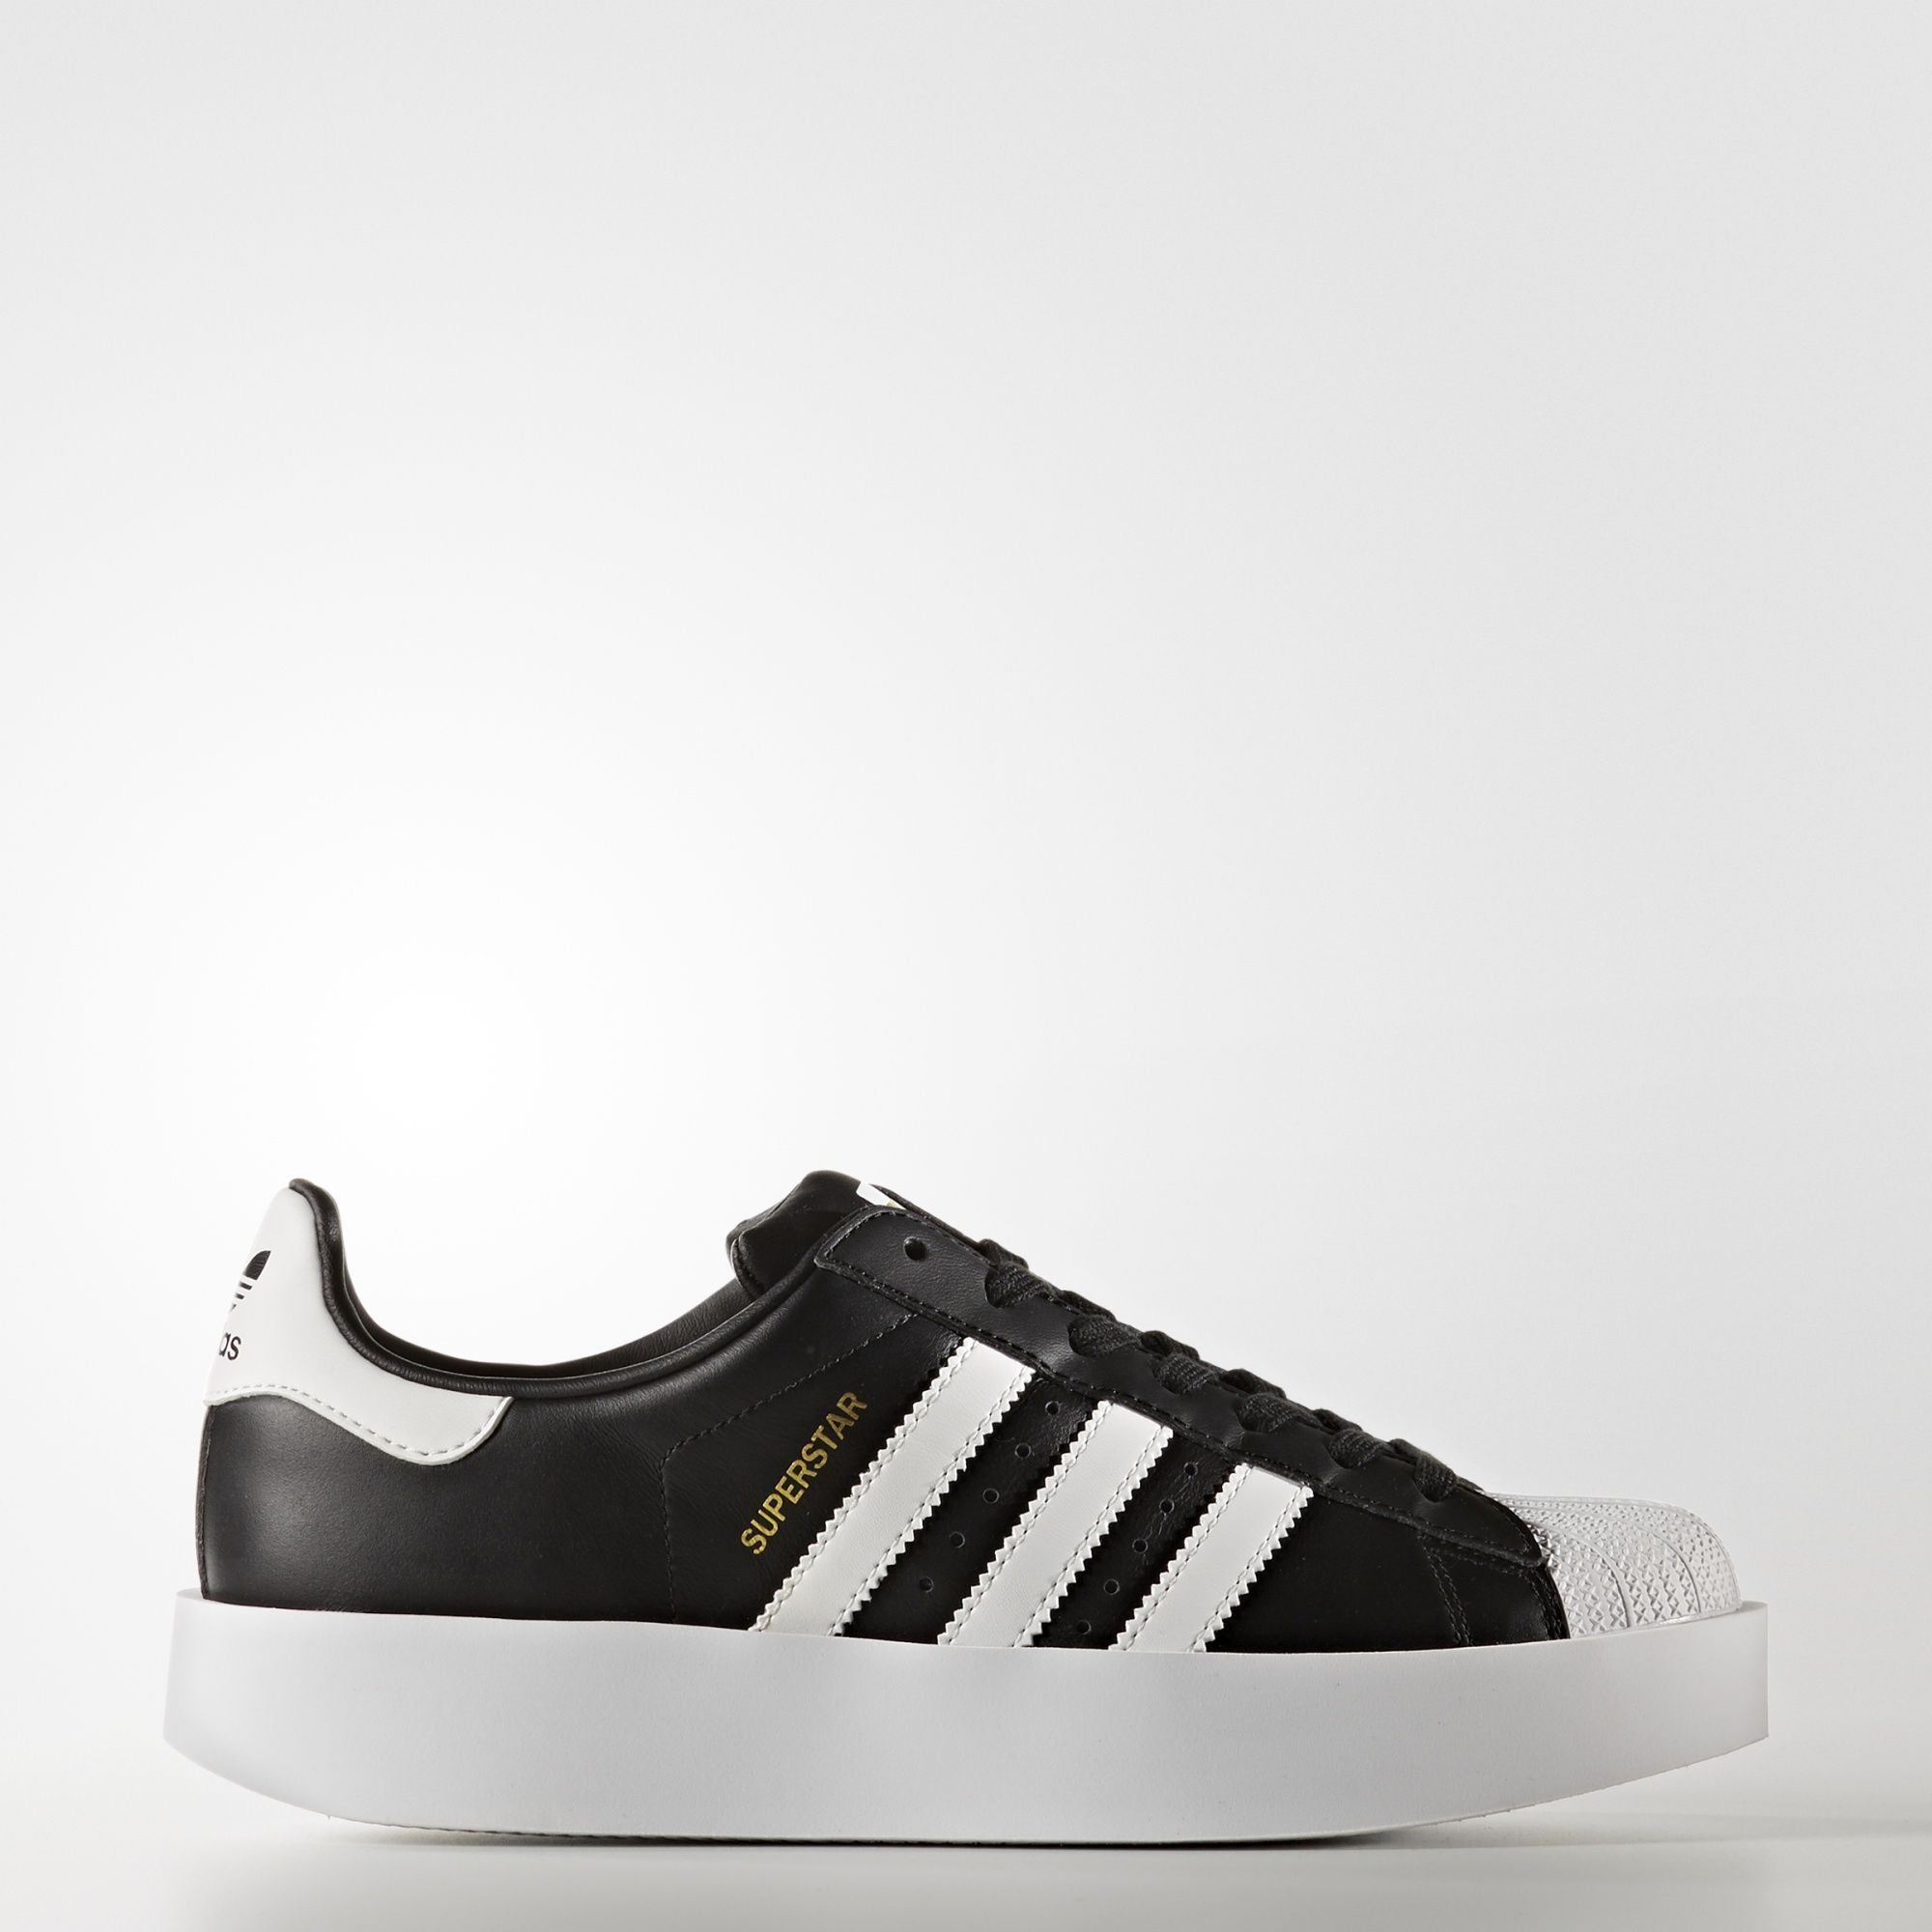 adidas Superstar Bold Platform Shoes | Outfit in 2019